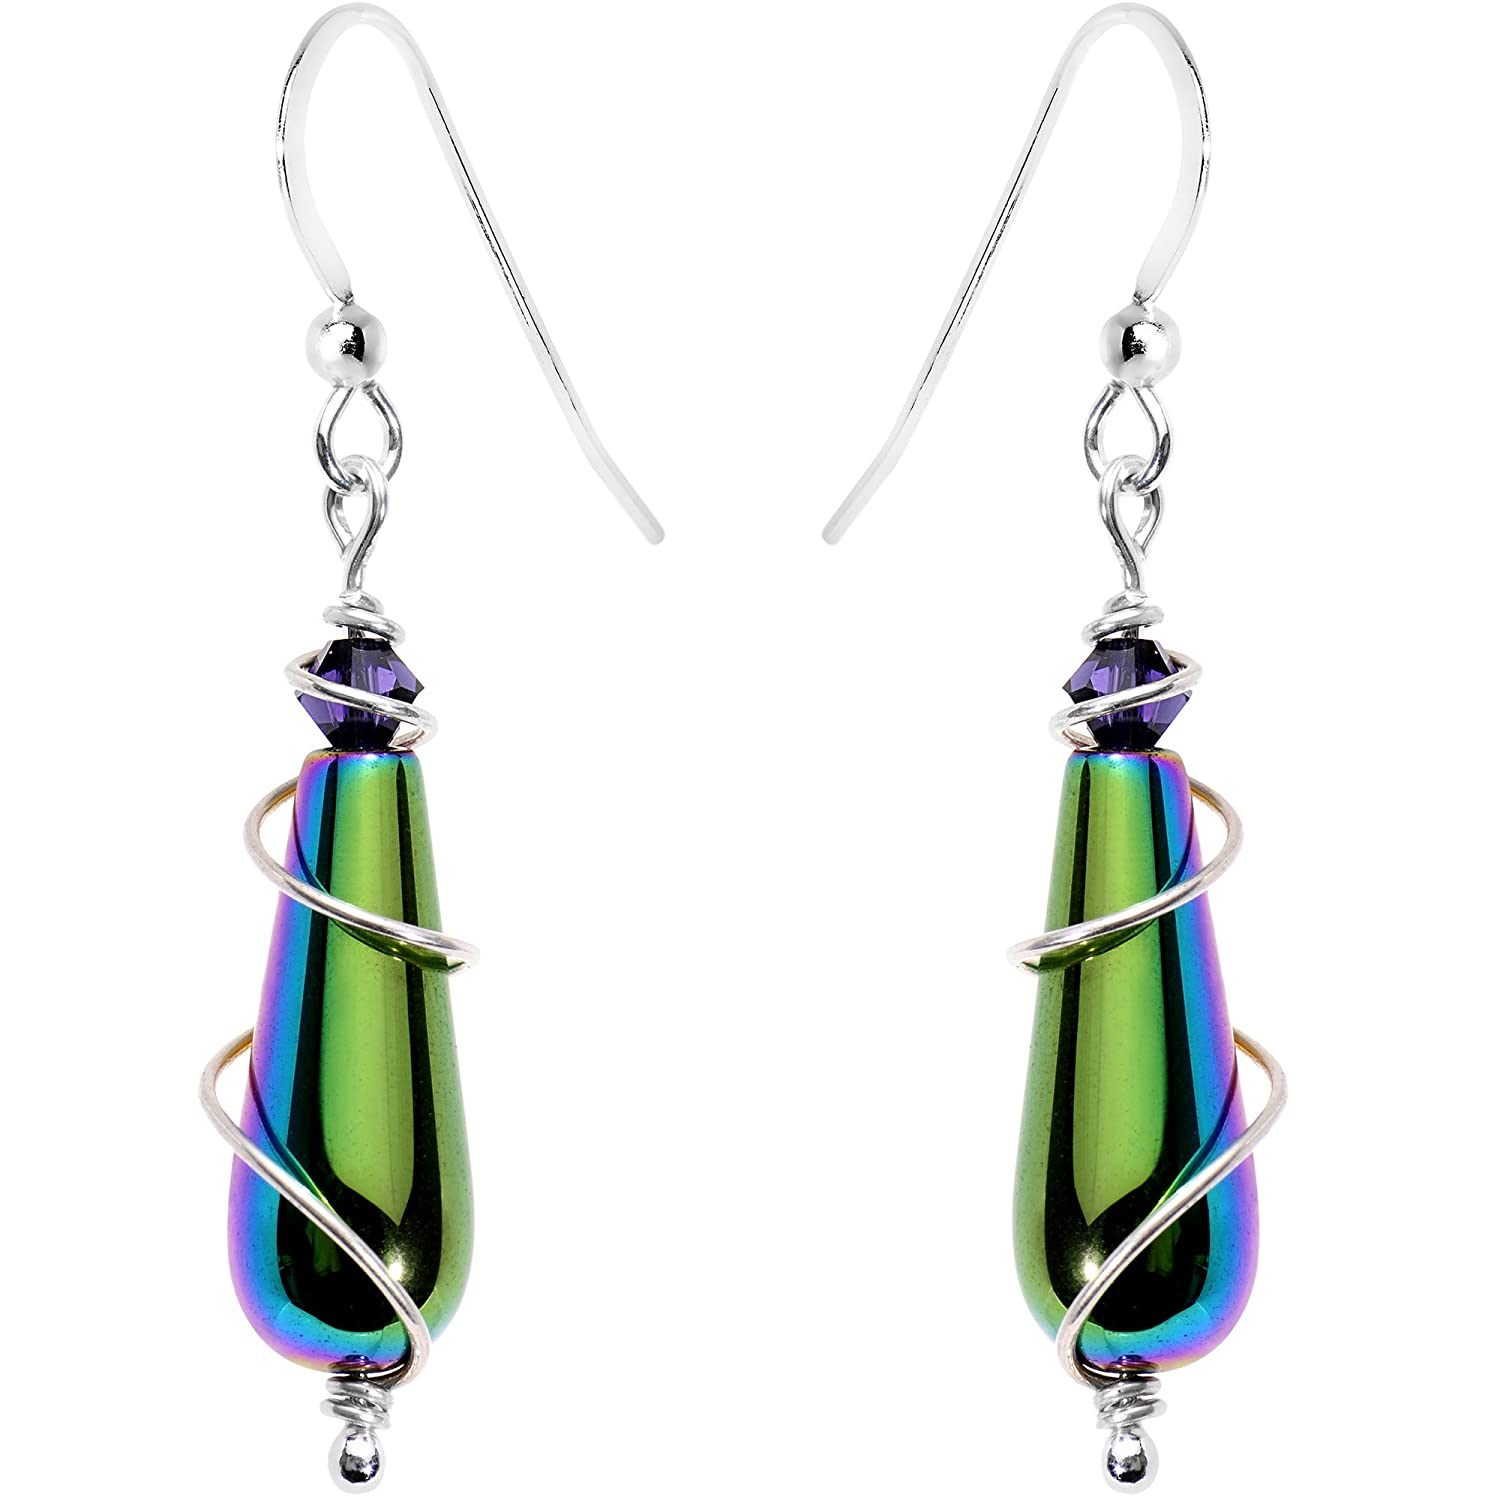 Body Candy Handcrafted 925 Silver Rainbow Drop Earrings Created with Swarovski Crystals